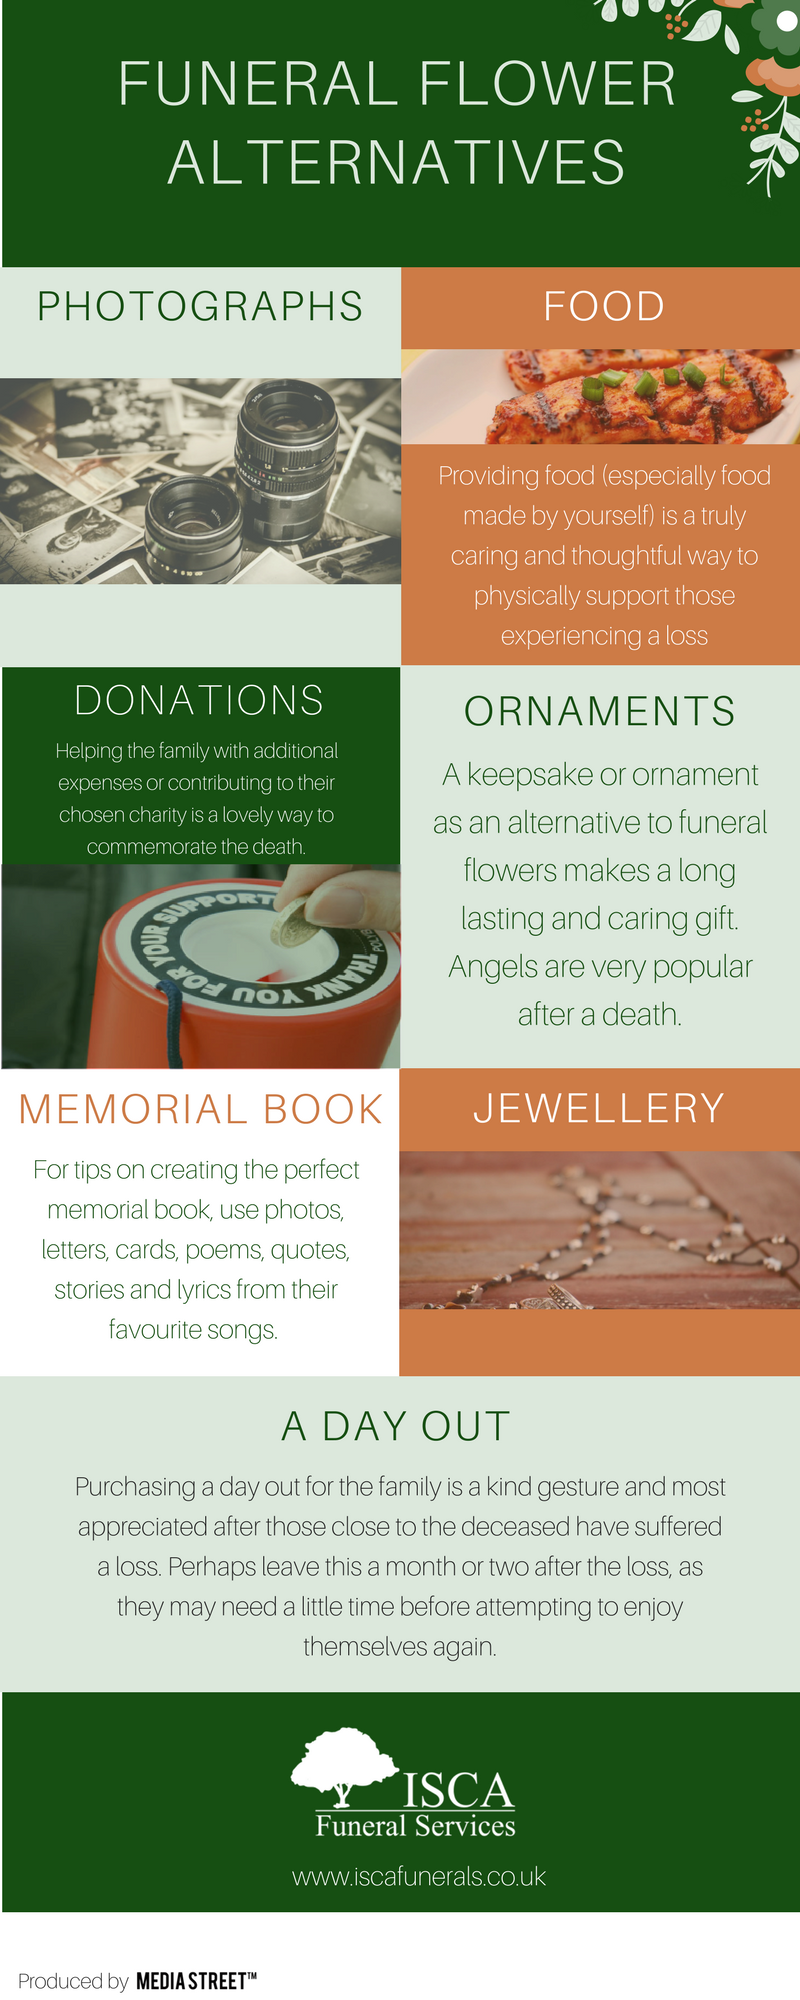 Funeral flower alternatives isca funerals exeter funeral flower alternatives infographic izmirmasajfo